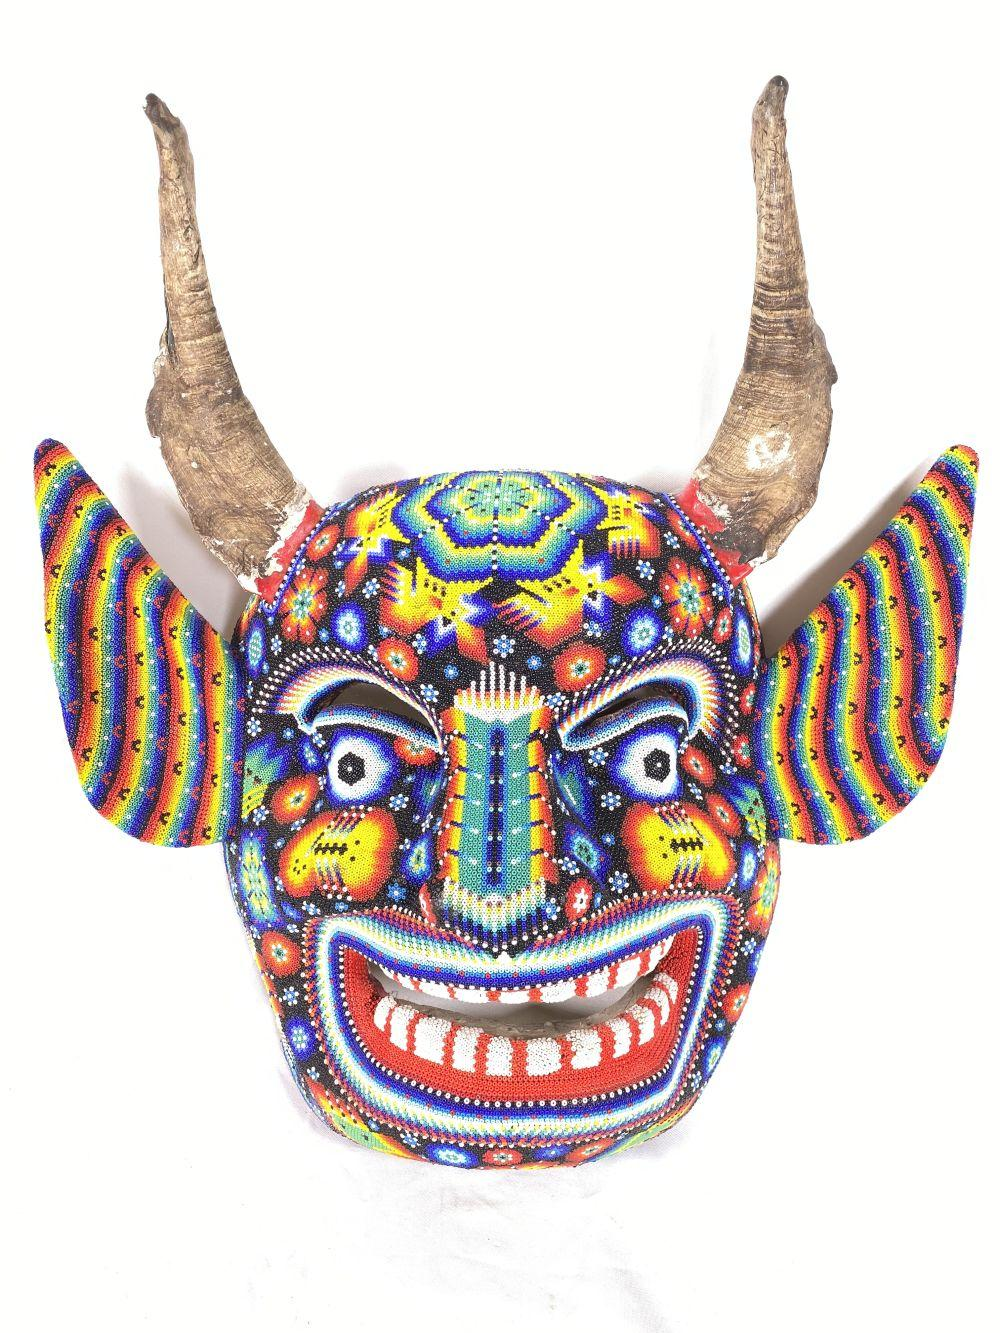 Huichol Mexican Foreign Hand Beaded Tribal Mask w/ Real Horns